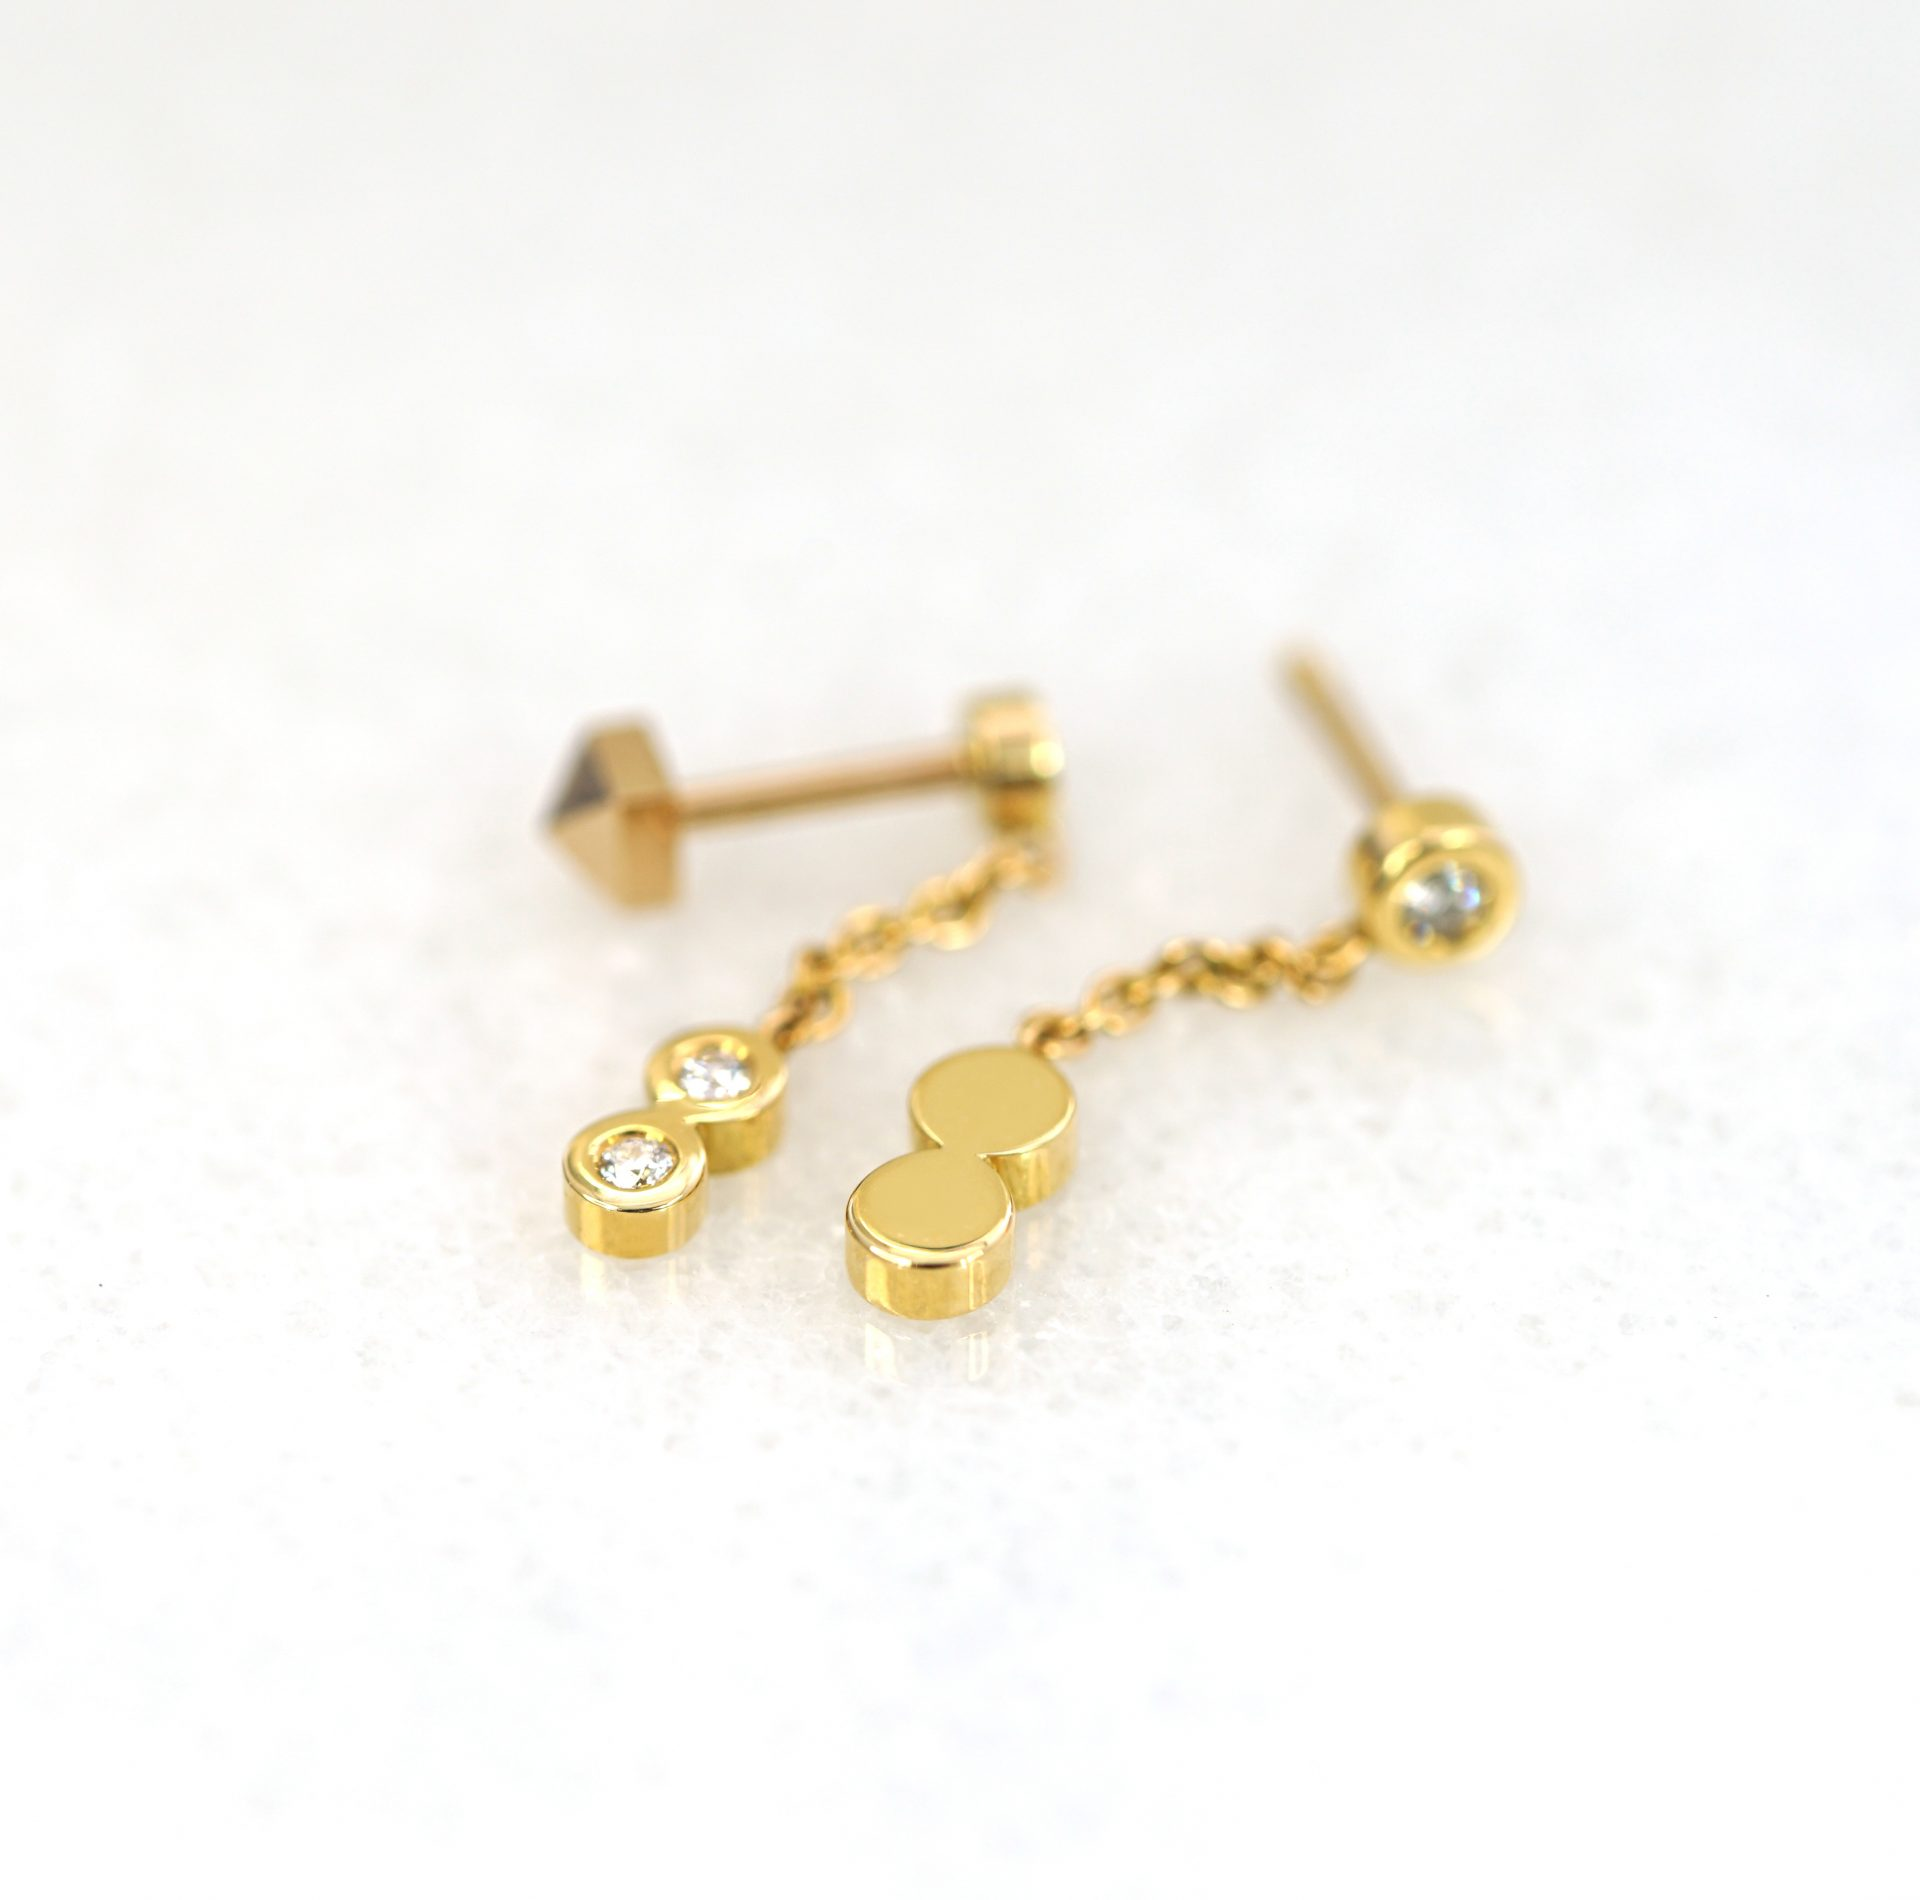 sophisticated delicate elegant luxury piercing cartilage earrings jewellery lena cohen london